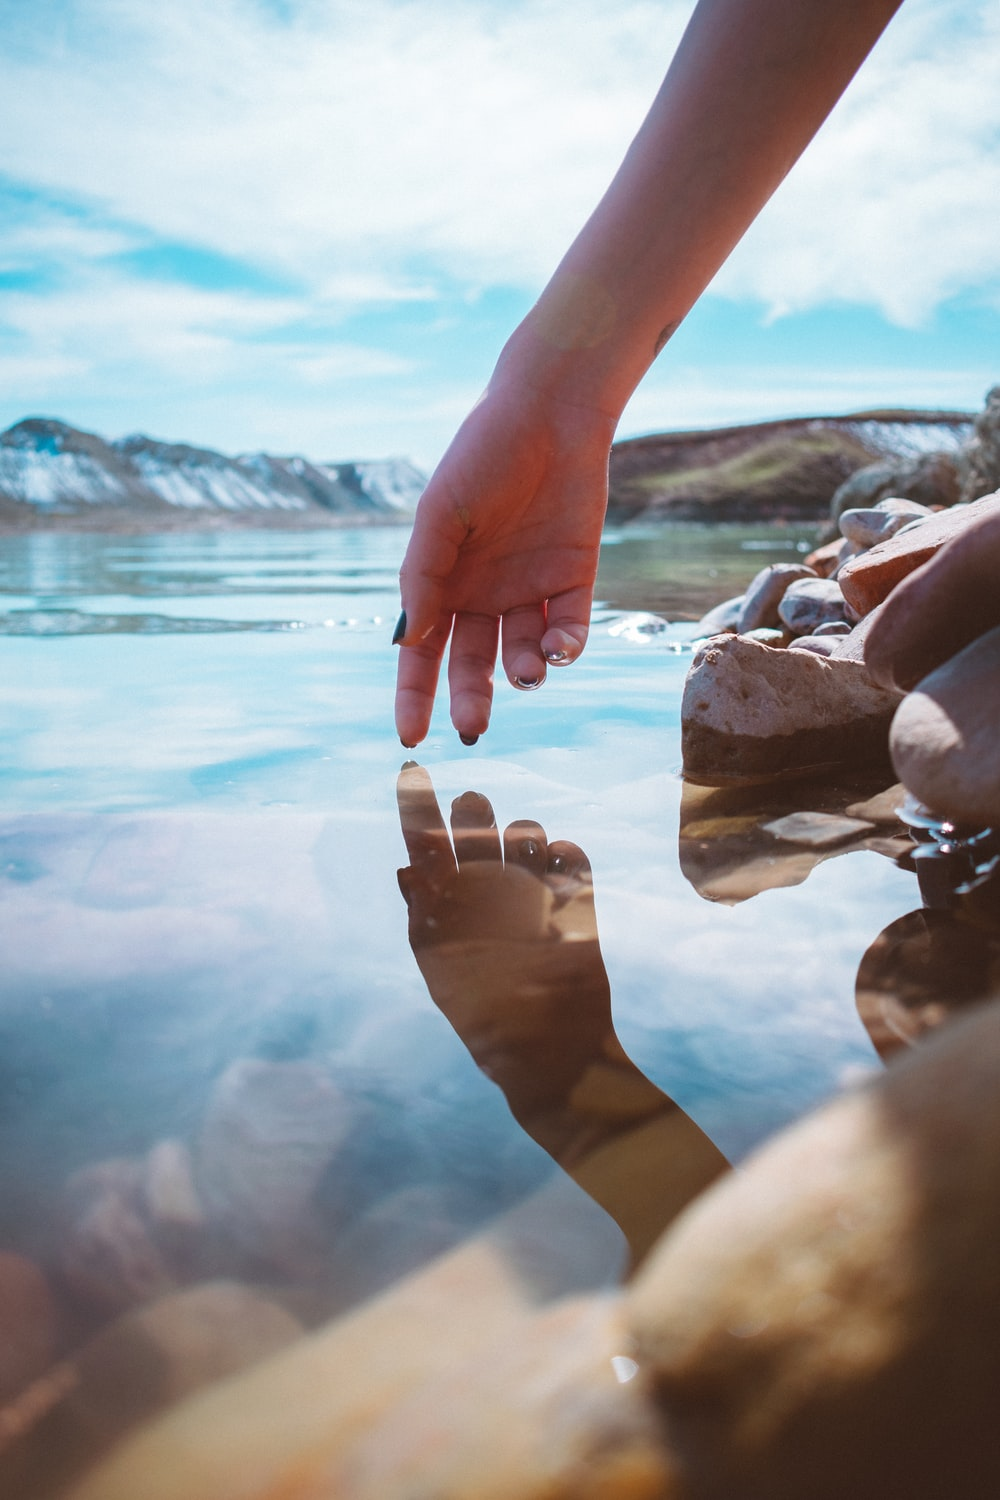 person with brown nail polish holding stones near body of water during daytime